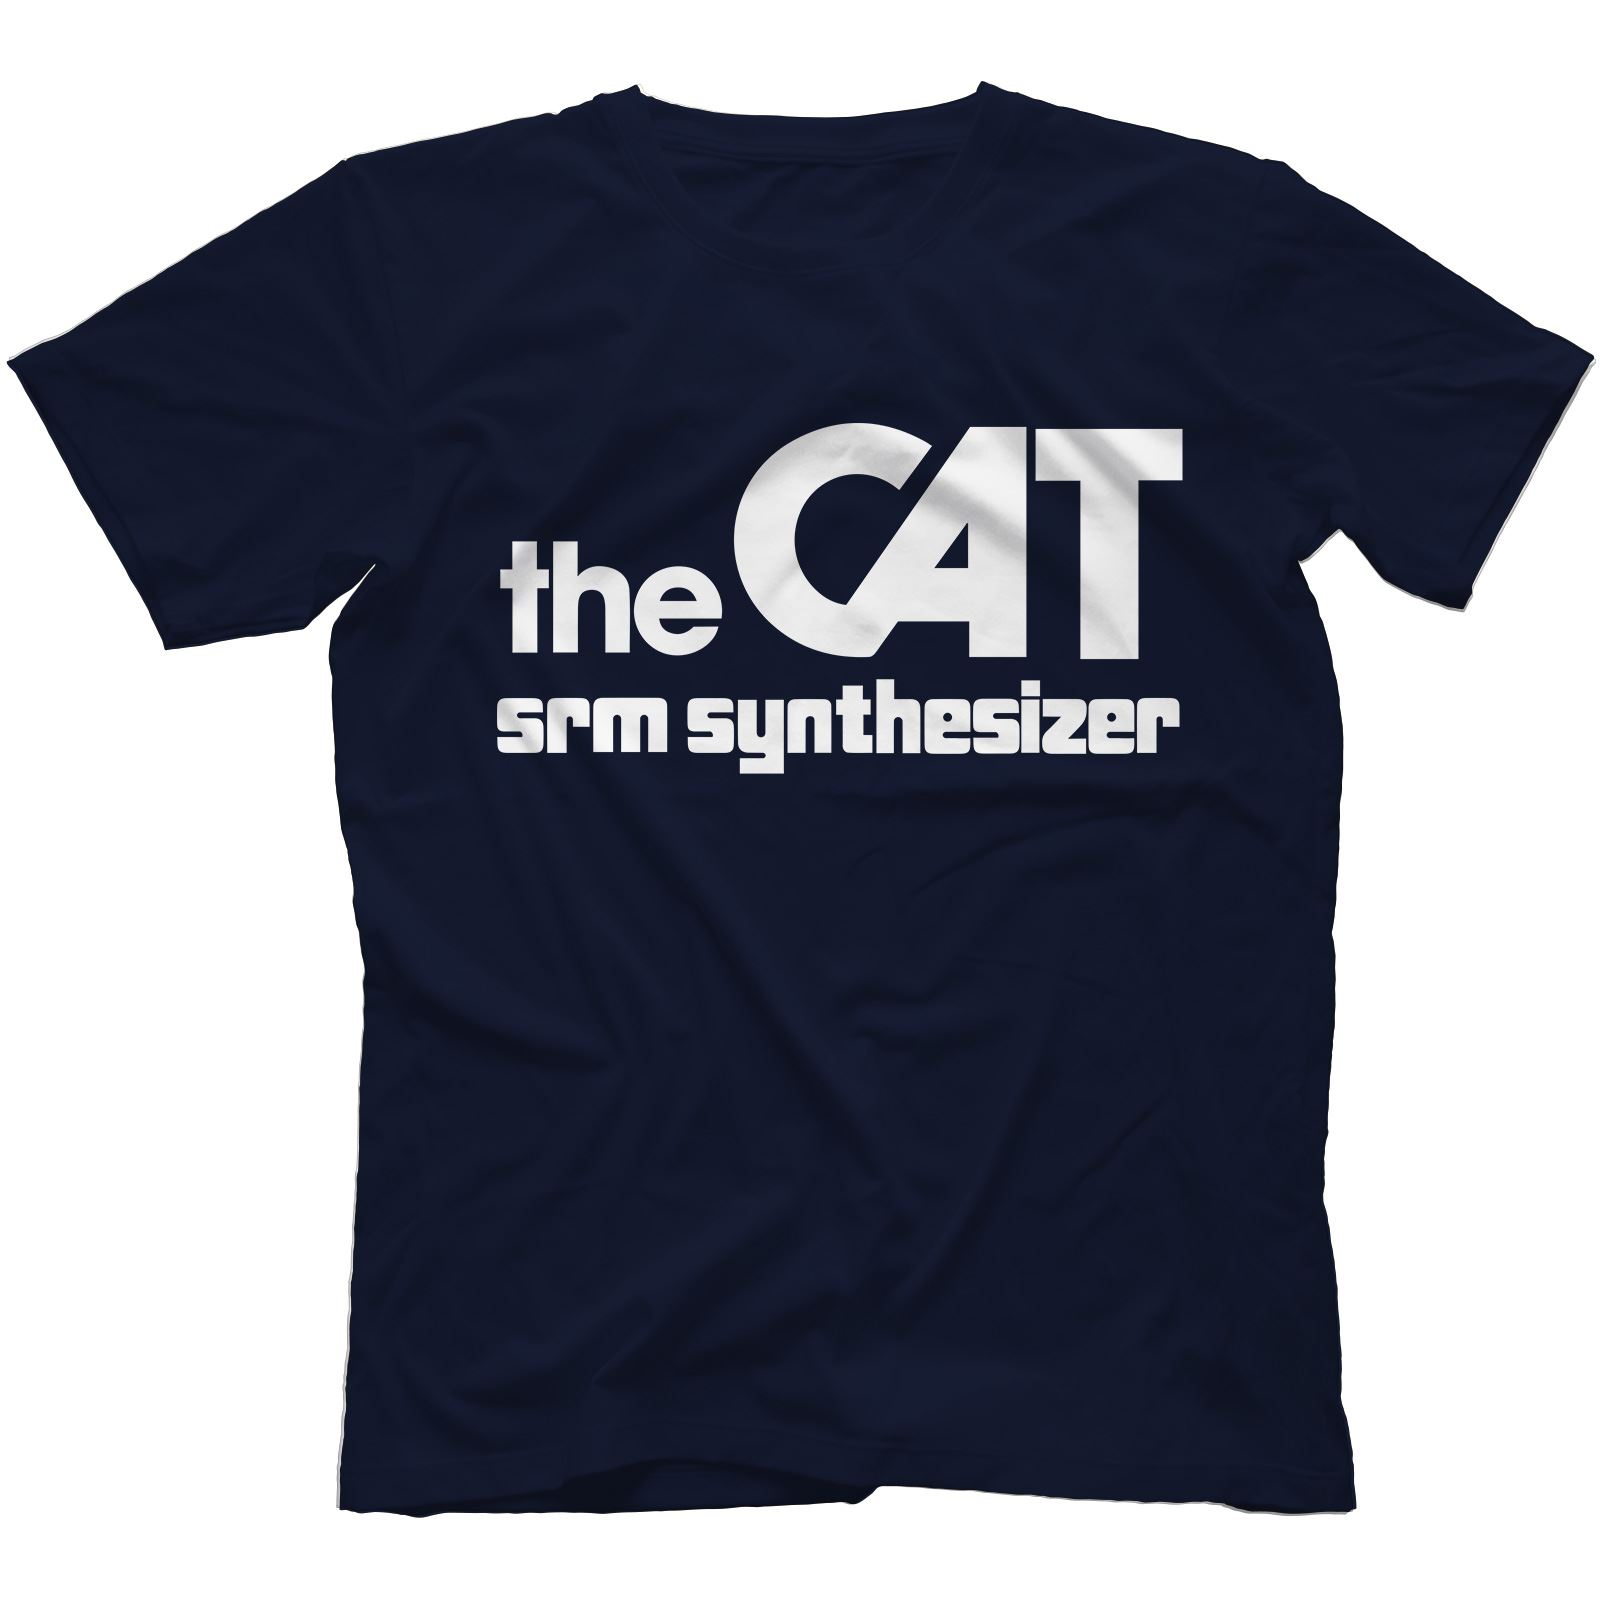 The-Cat-SRM-Synthesiser-T-Shirt-100-Cotton-Retro-Analog-Arp-Odyssey Indexbild 39